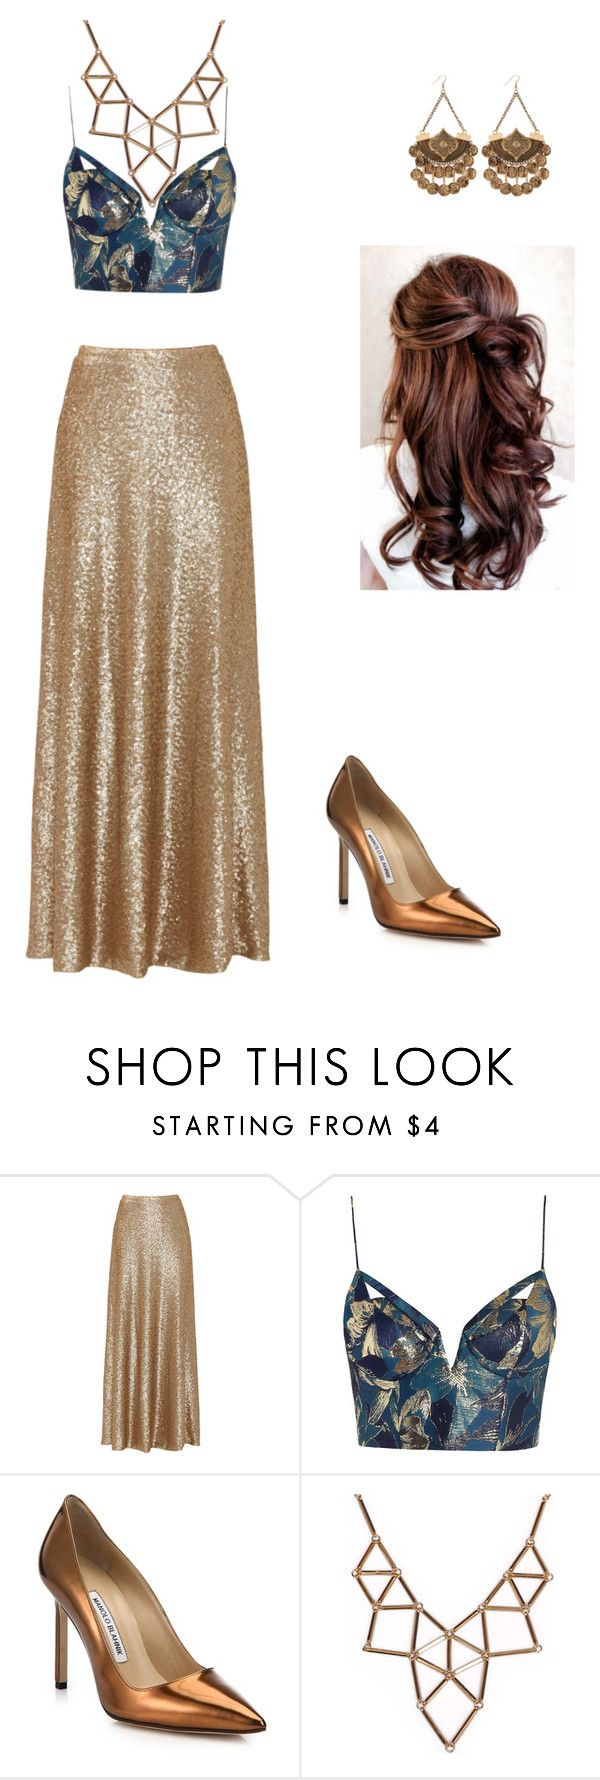 """""""Lady Kenna Reign"""" by keeghanl ❤ liked on Polyvore featuring Slate & Willow, Zimmermann, Manolo Blahnik and Chicnova Fashion"""